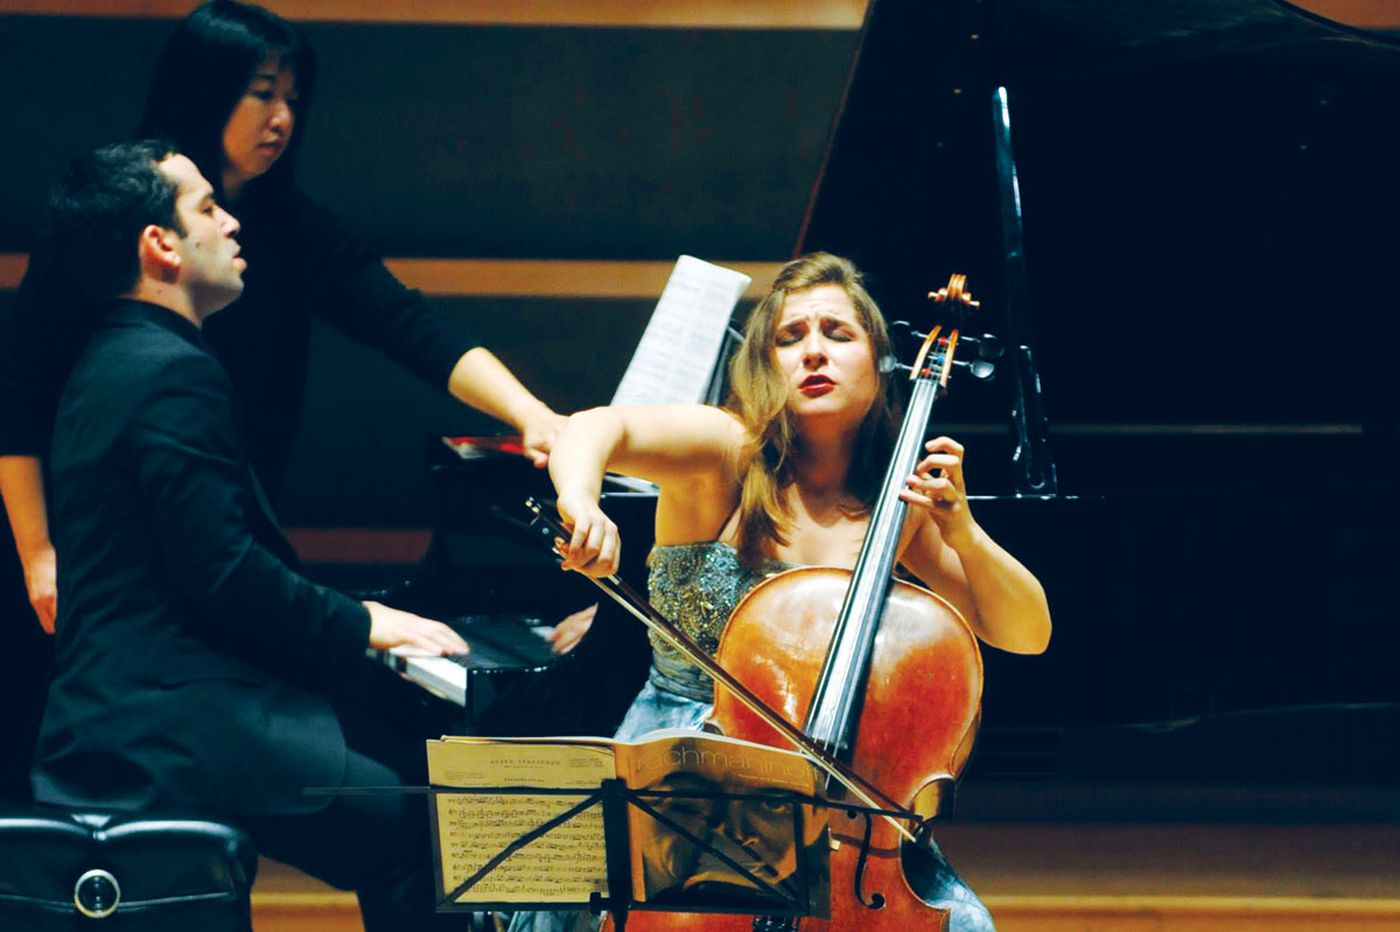 Classical music page-turners turn the page into the modern era